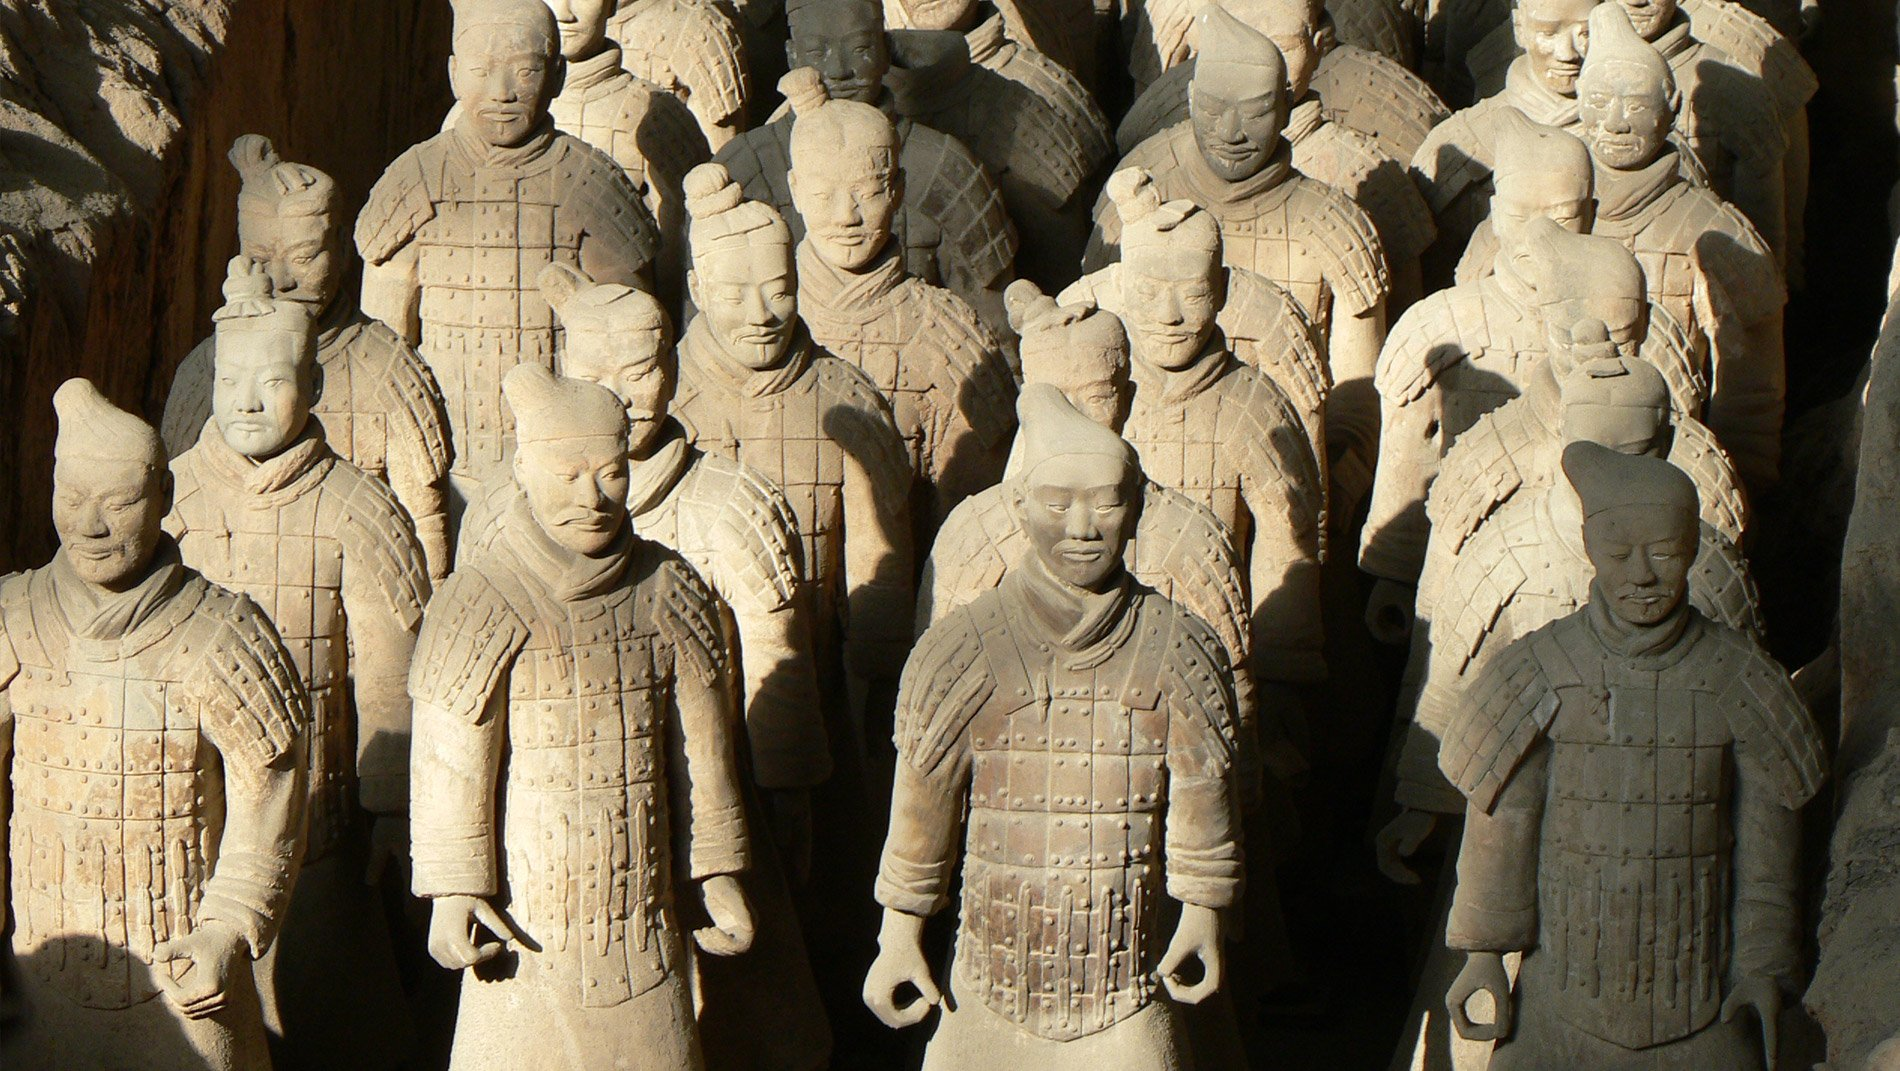 Terracotta Warriors~The three archaeological pits containing the Terracotta Army hold more than 8,000 soldiers, 130 chariots with 520 horses, and 150 cavalry horses.